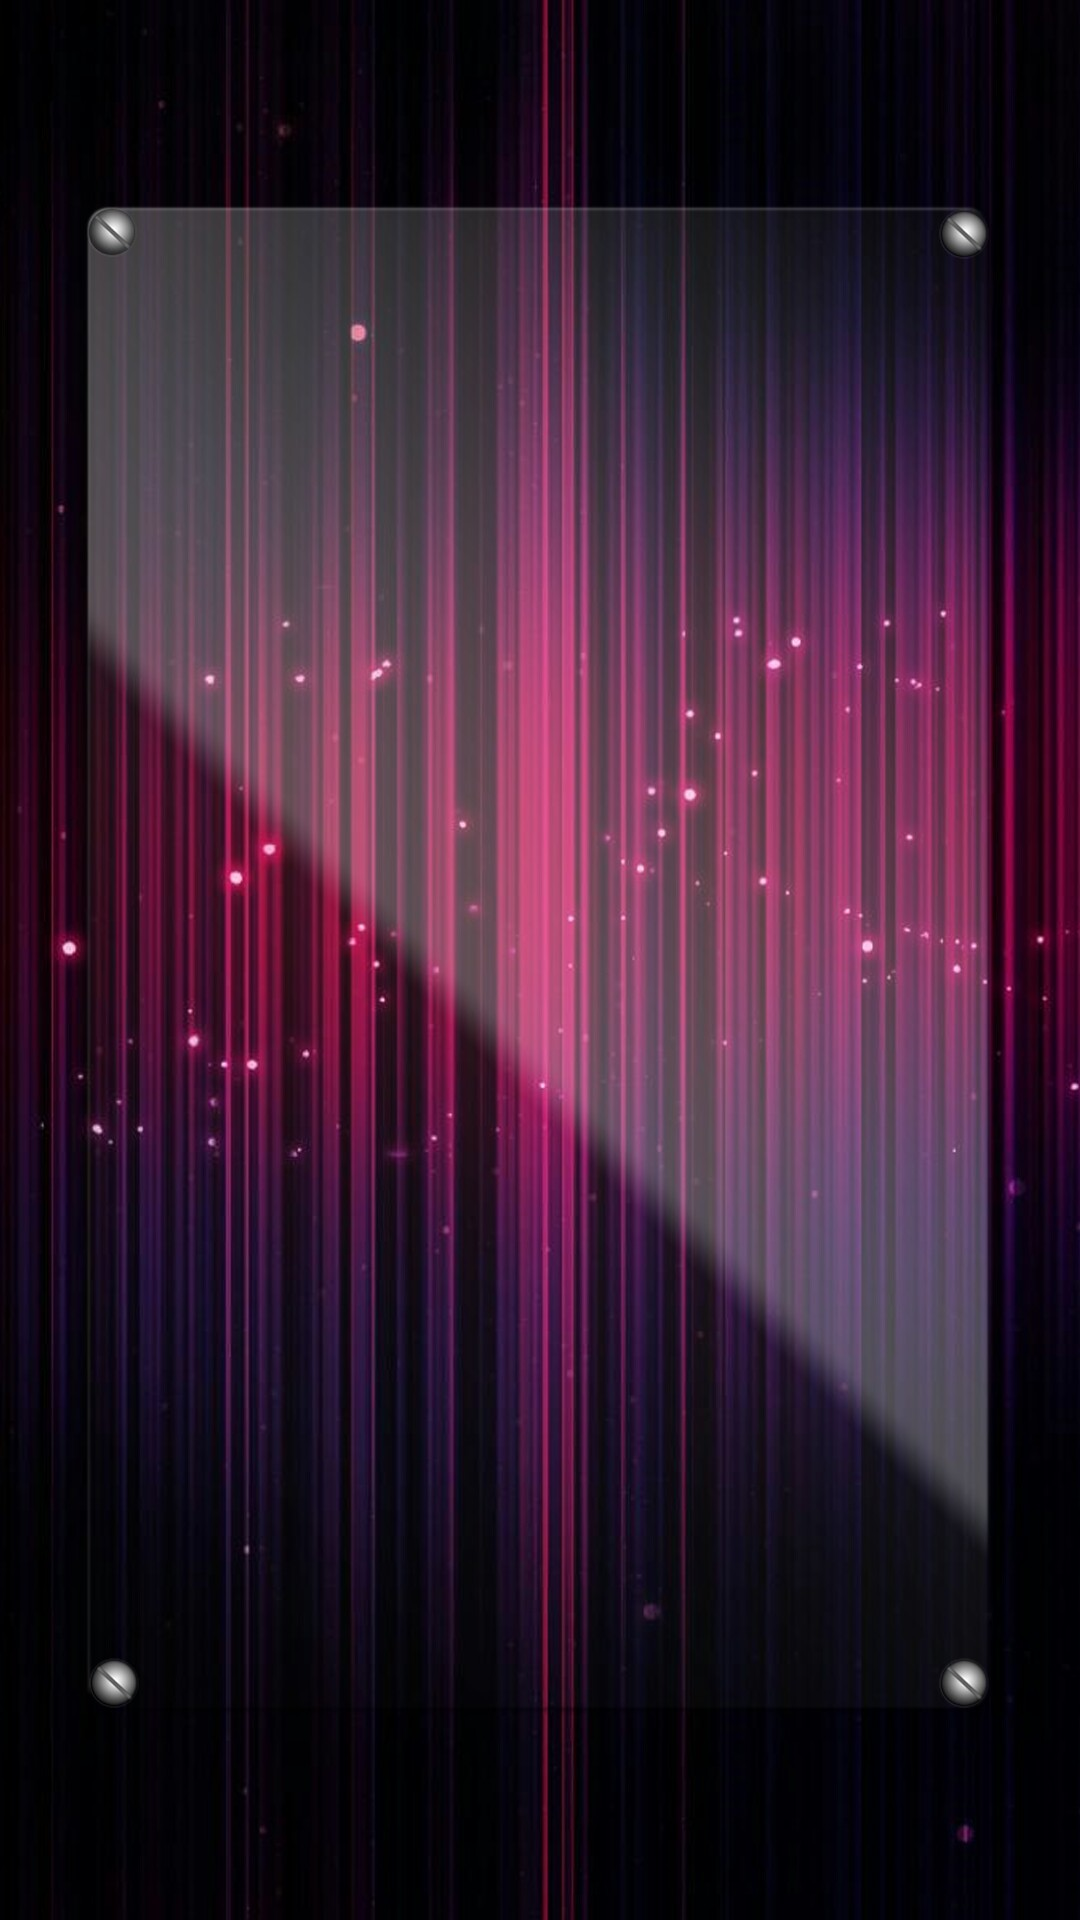 1080x1920 Pink and Purple Strobe Lights Wallpaper